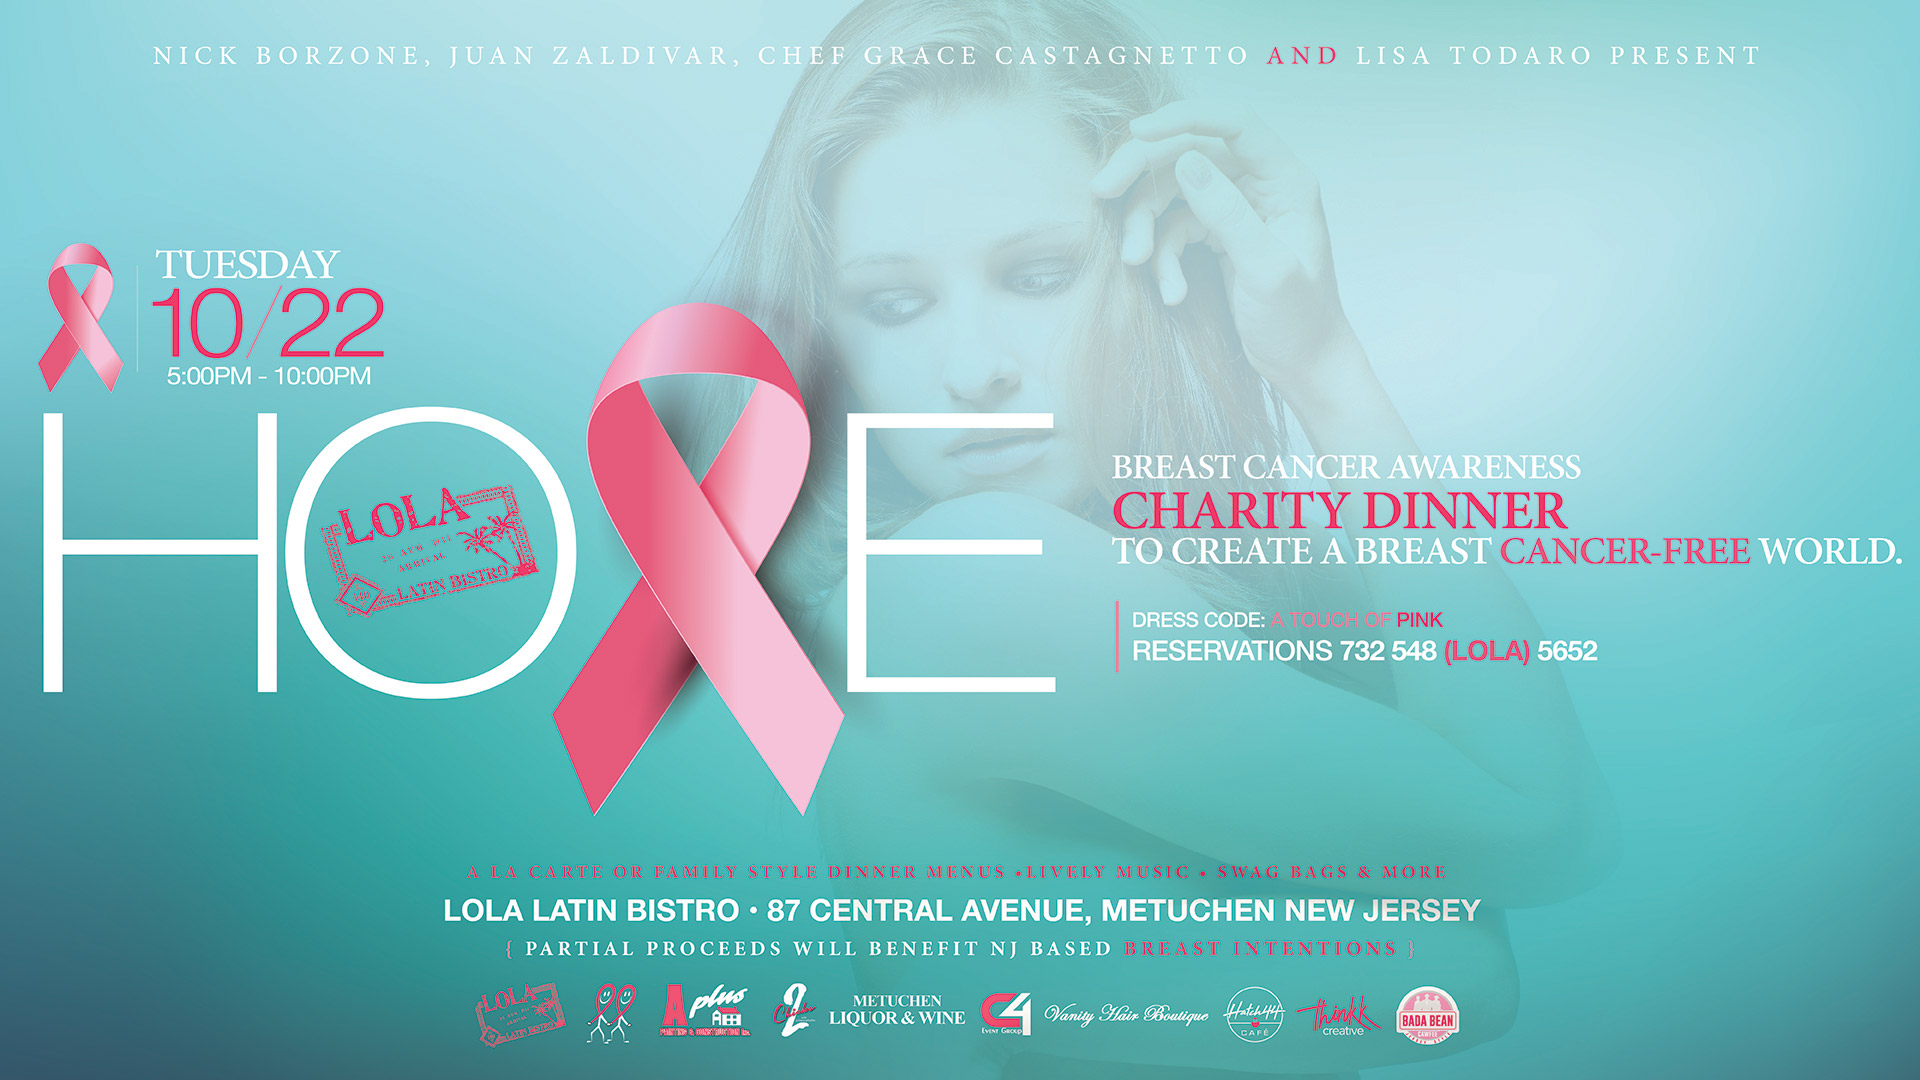 HOPE – Breast Cancer Awareness Charity Dinner – Oct 22 2019